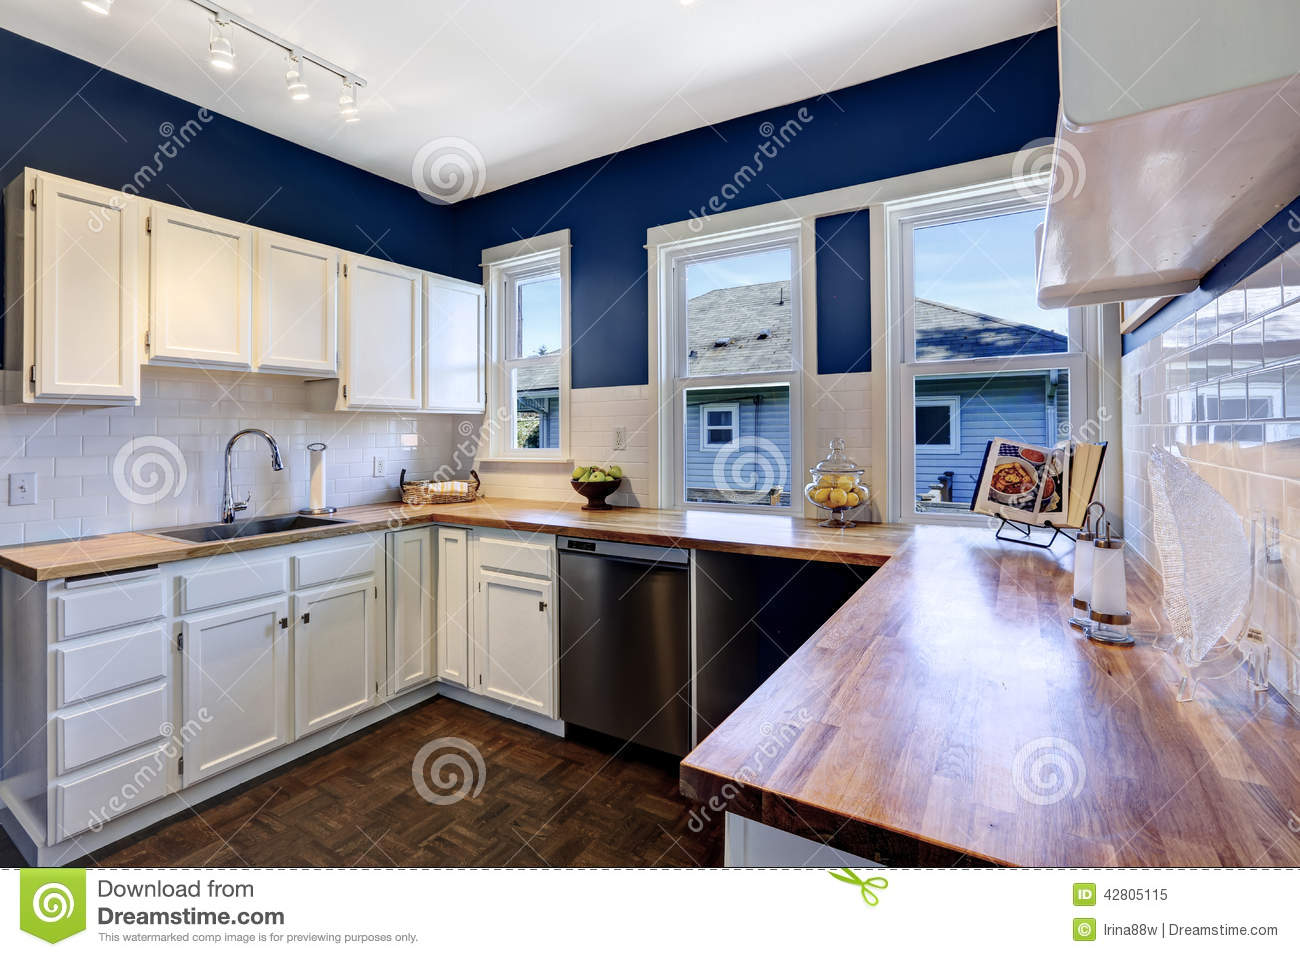 Kitchen Interior In Bright Navy And White Colors Stock Image